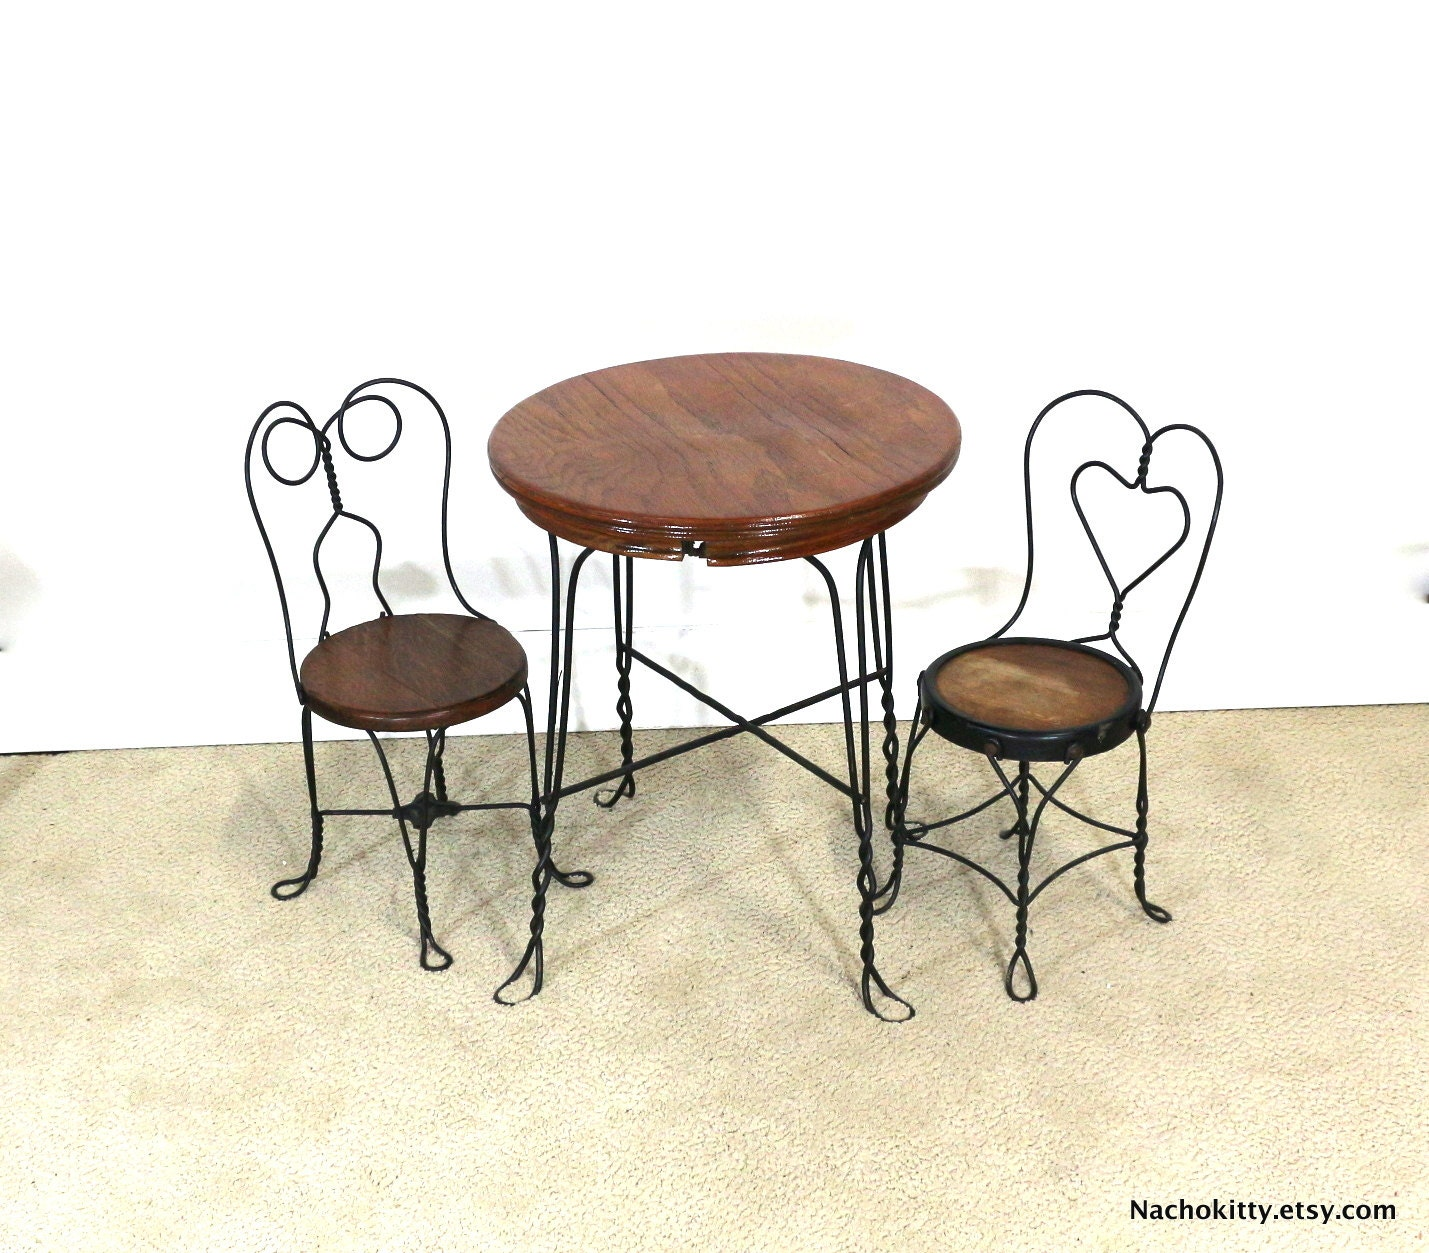 S ice cream parlor childs table chair set wood by